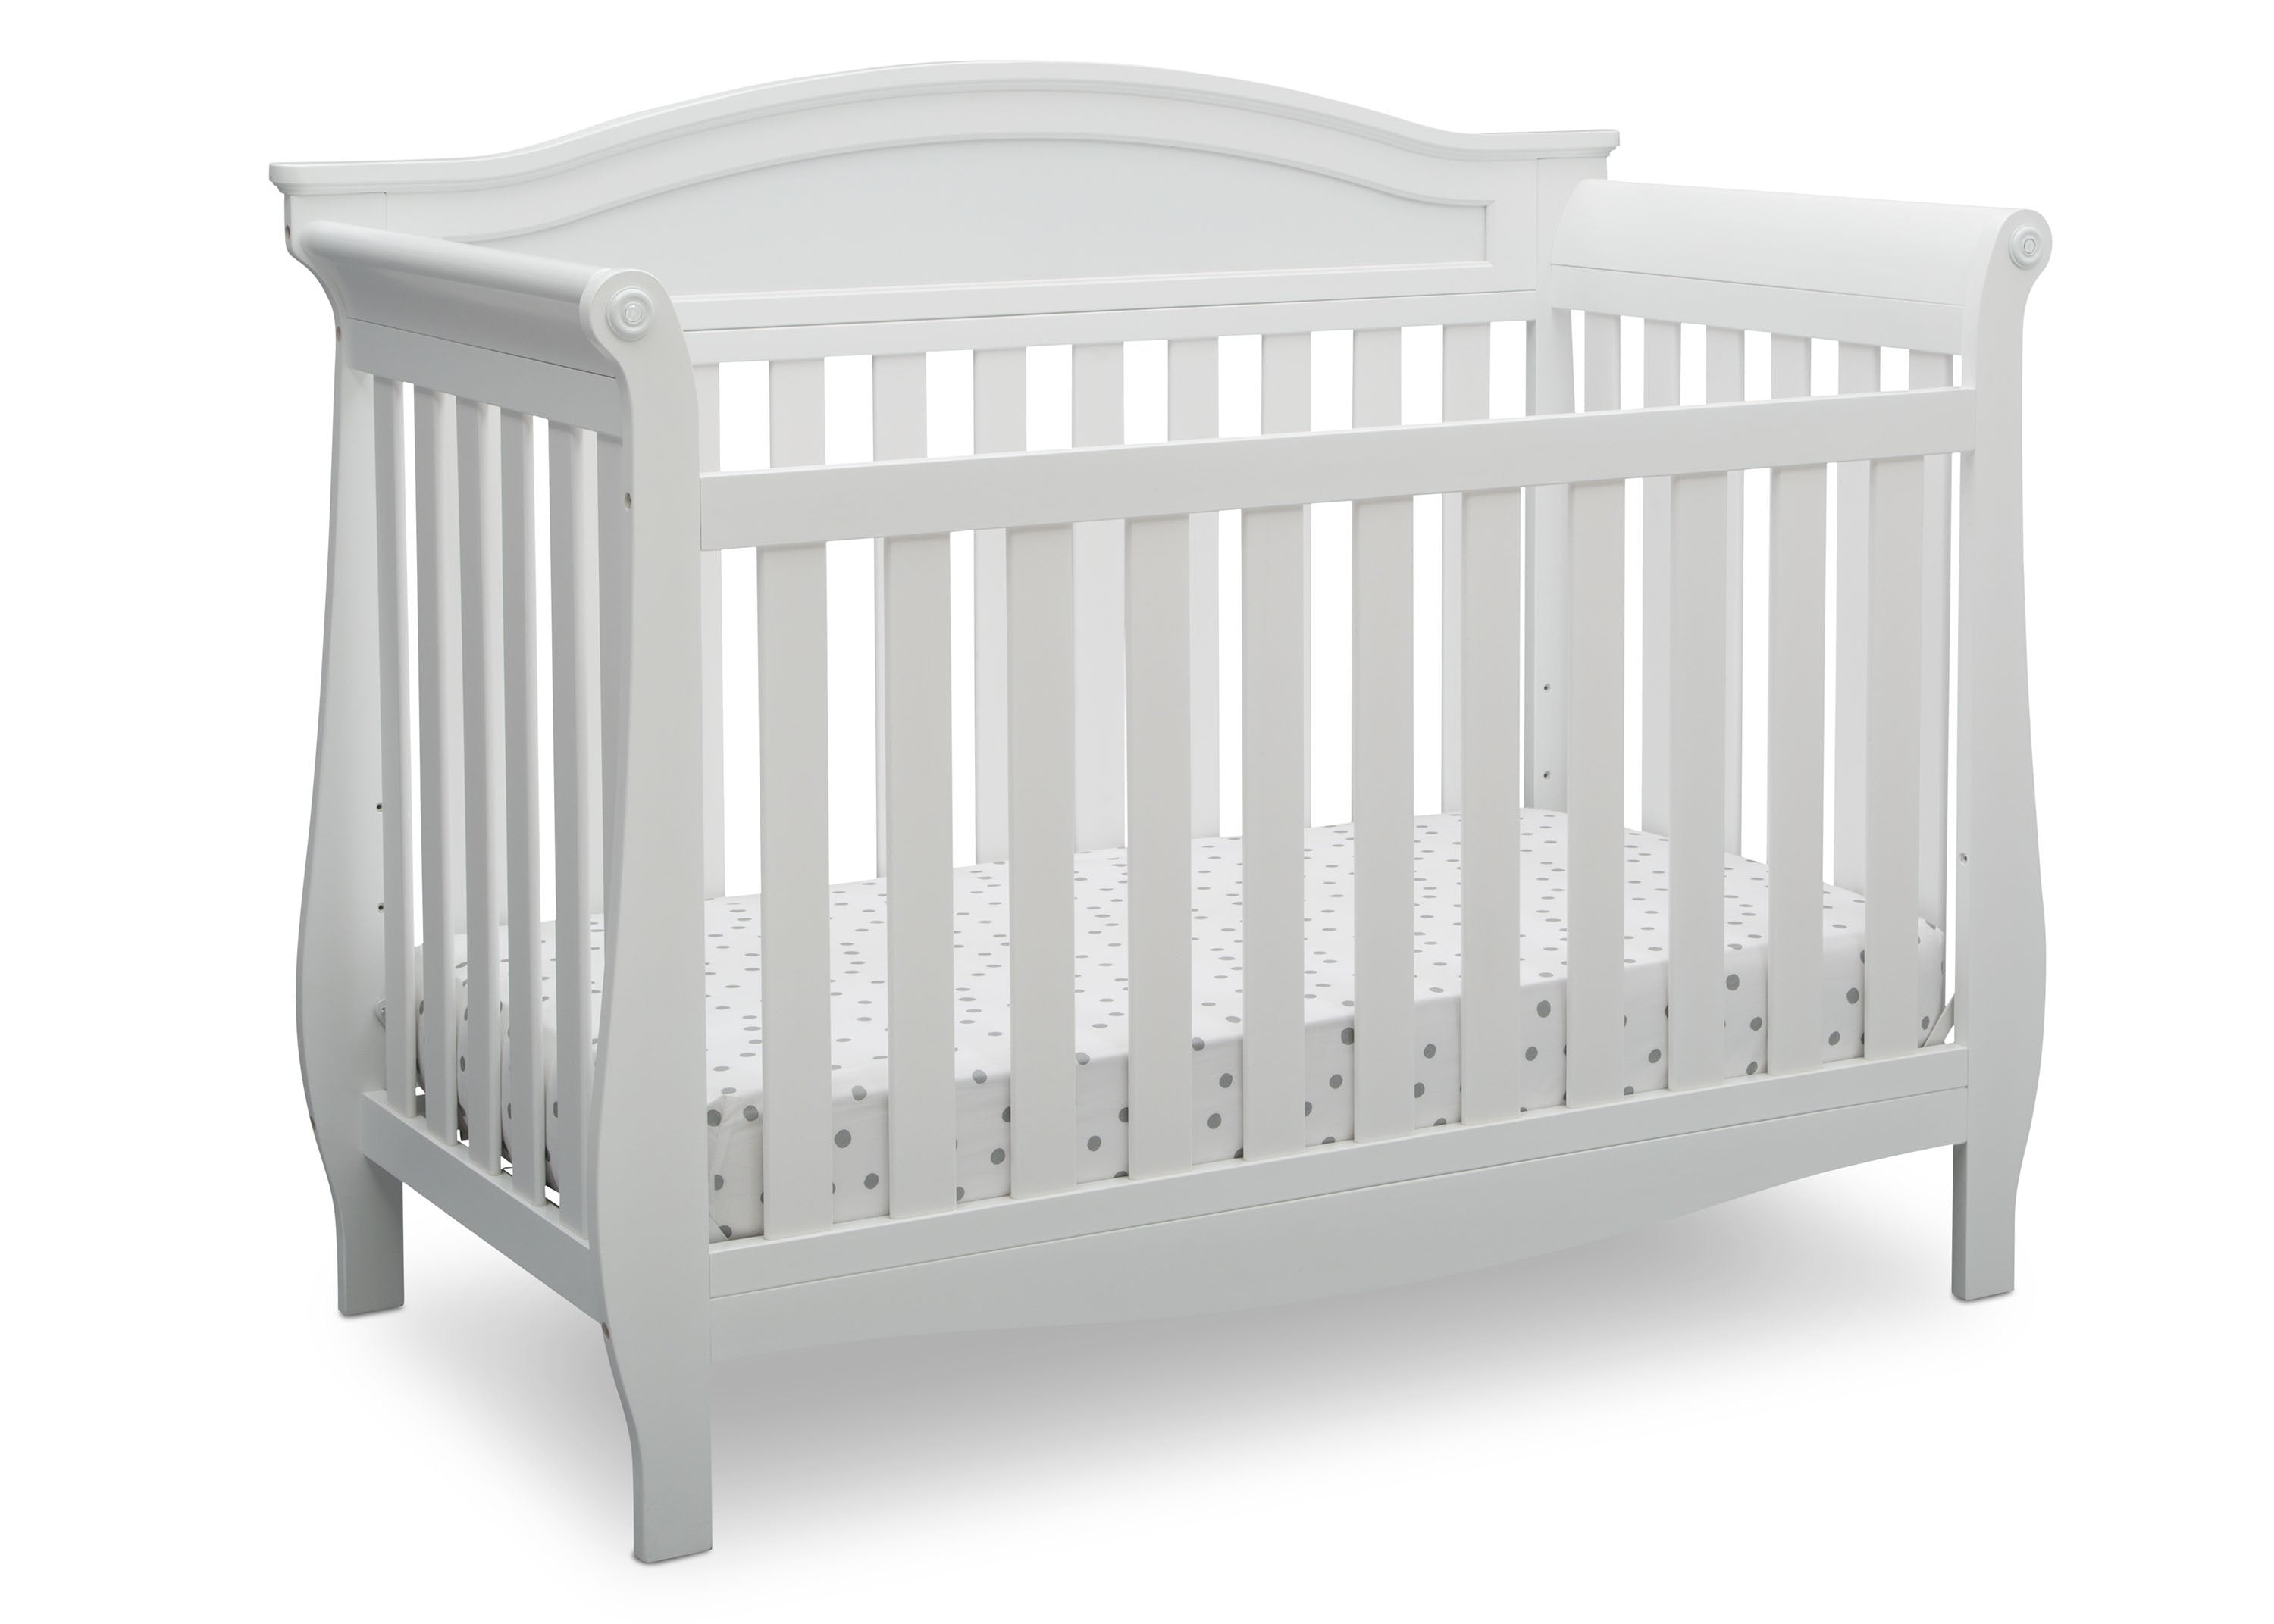 cb aw crib drawers silo nursery side lex furniture lexington convertible heirloom with baby white in oxford kids